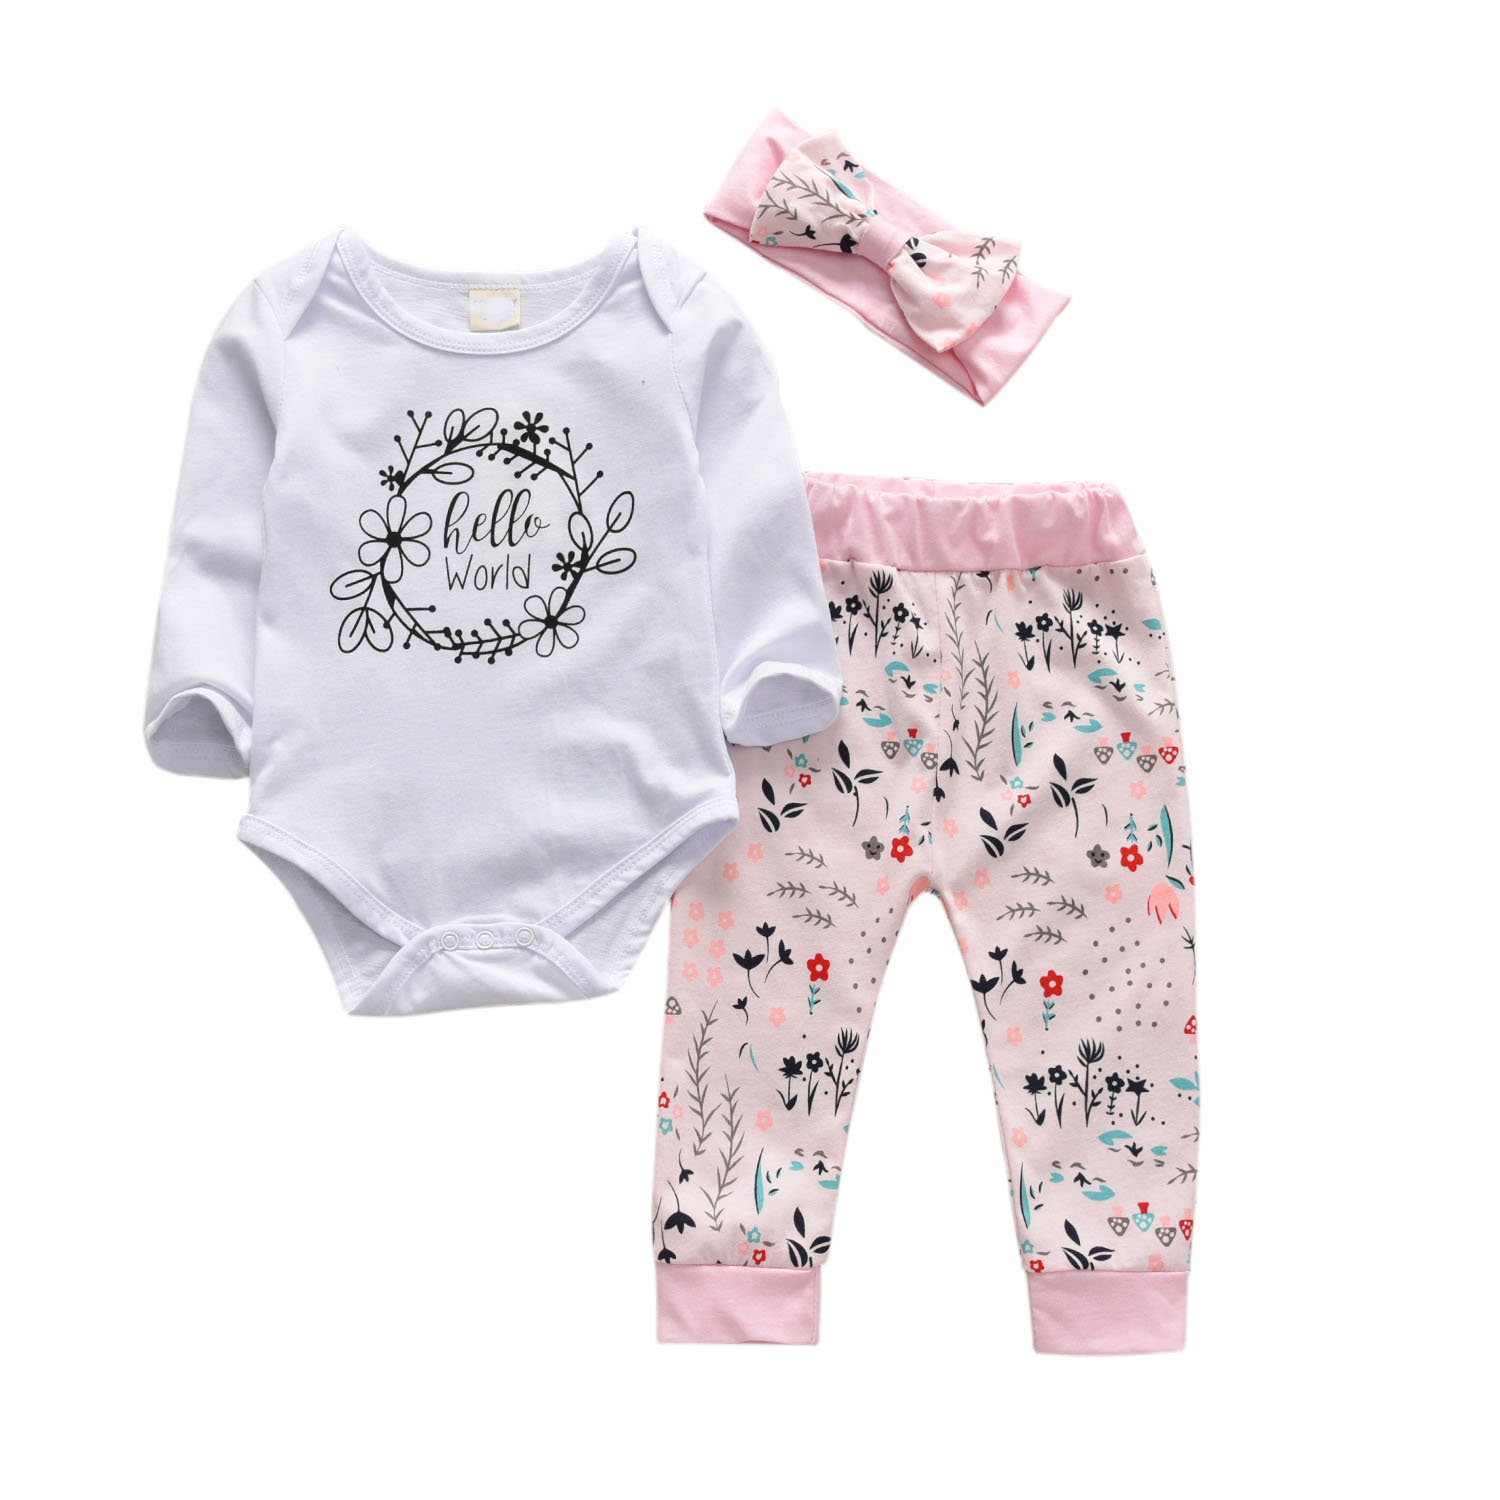 Hot Sell new style Baby Girl Clothes Long sleeve baby romper +pant +Headband 3pcs Newborn baby girls clothing set for 0-24M baby